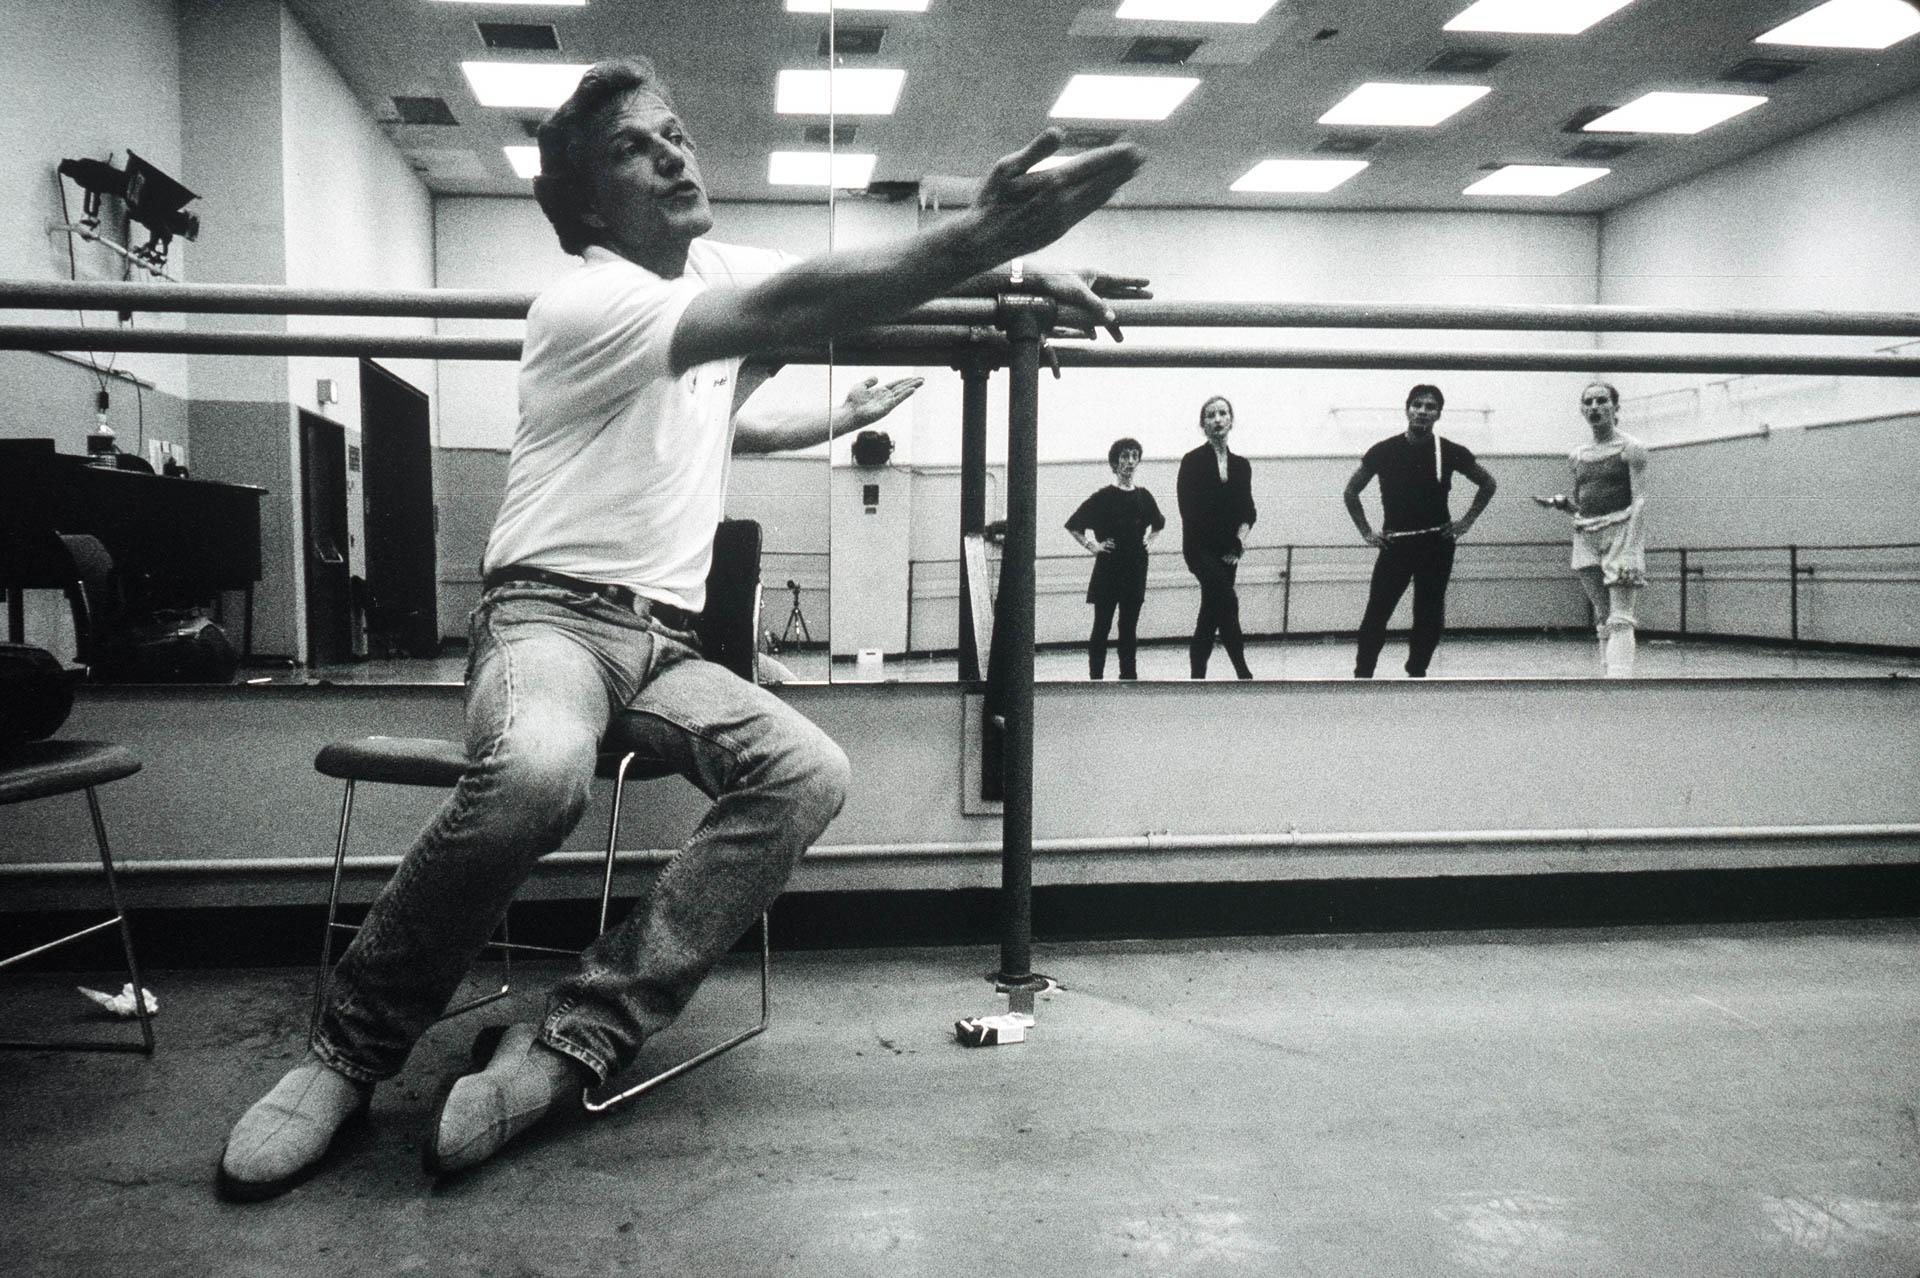 New York, USA 10 May 1995. A week spend in the backstage of the prestigious New York city ballet.© GIANNI GIANSANTI